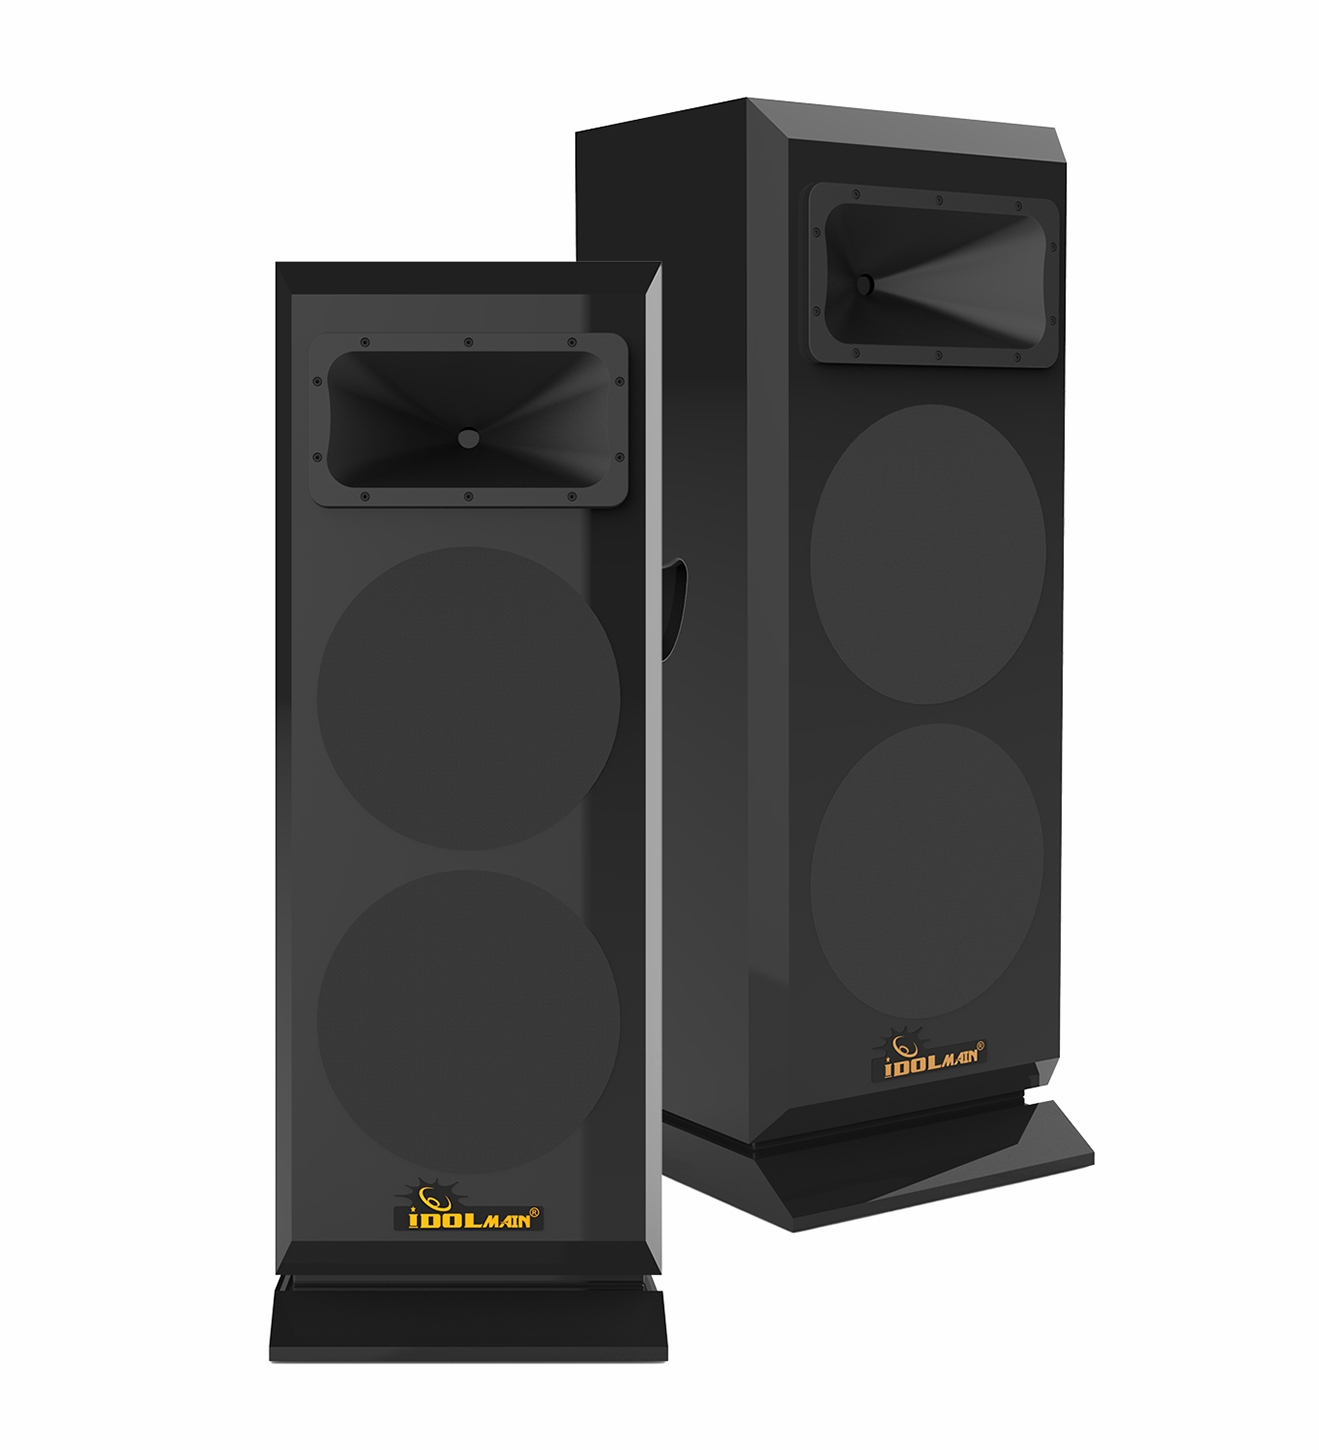 "IDOlmain IPS-DELUXE 3 Professional Floor Standing 3000W Loudspeakers <font color="" orange""><b>NEW & IMPROVED 2021</b></font>"